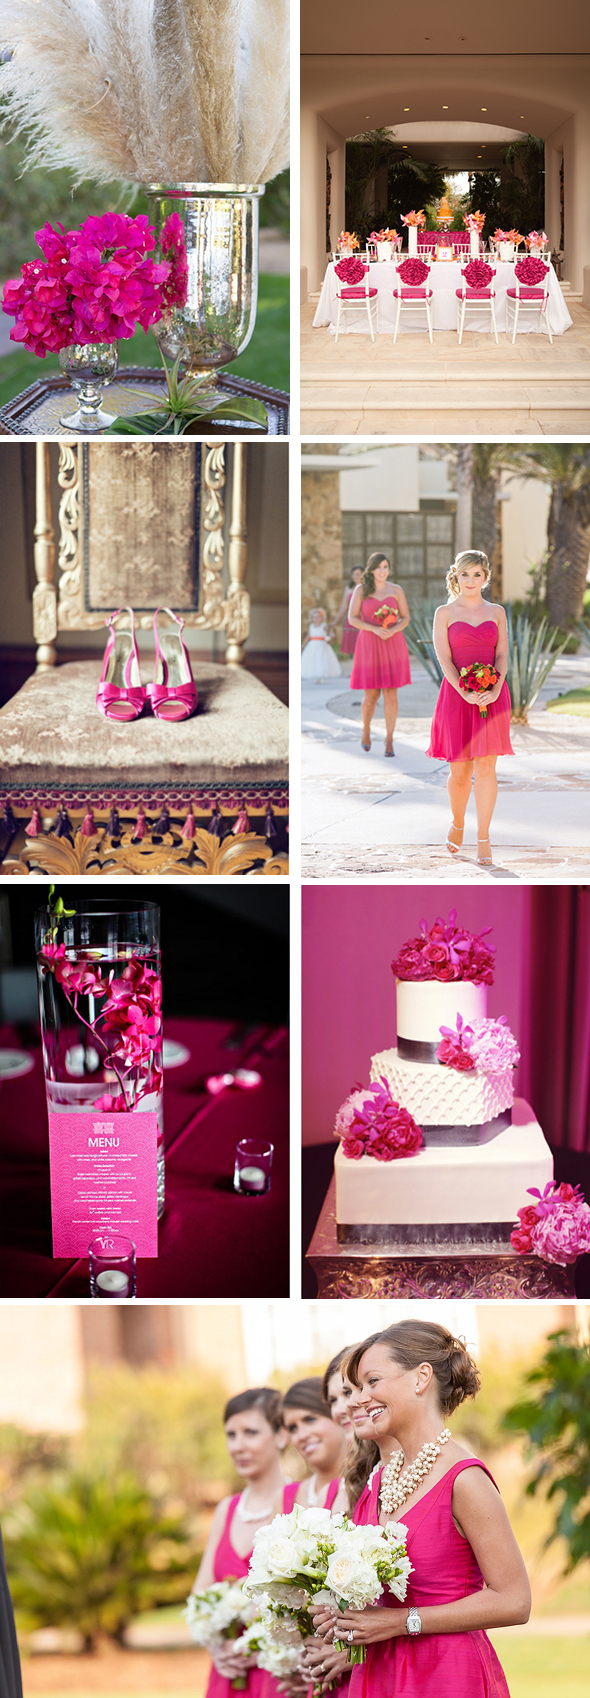 FuchiaWedding Color Palette Inspiration: Fuchsia